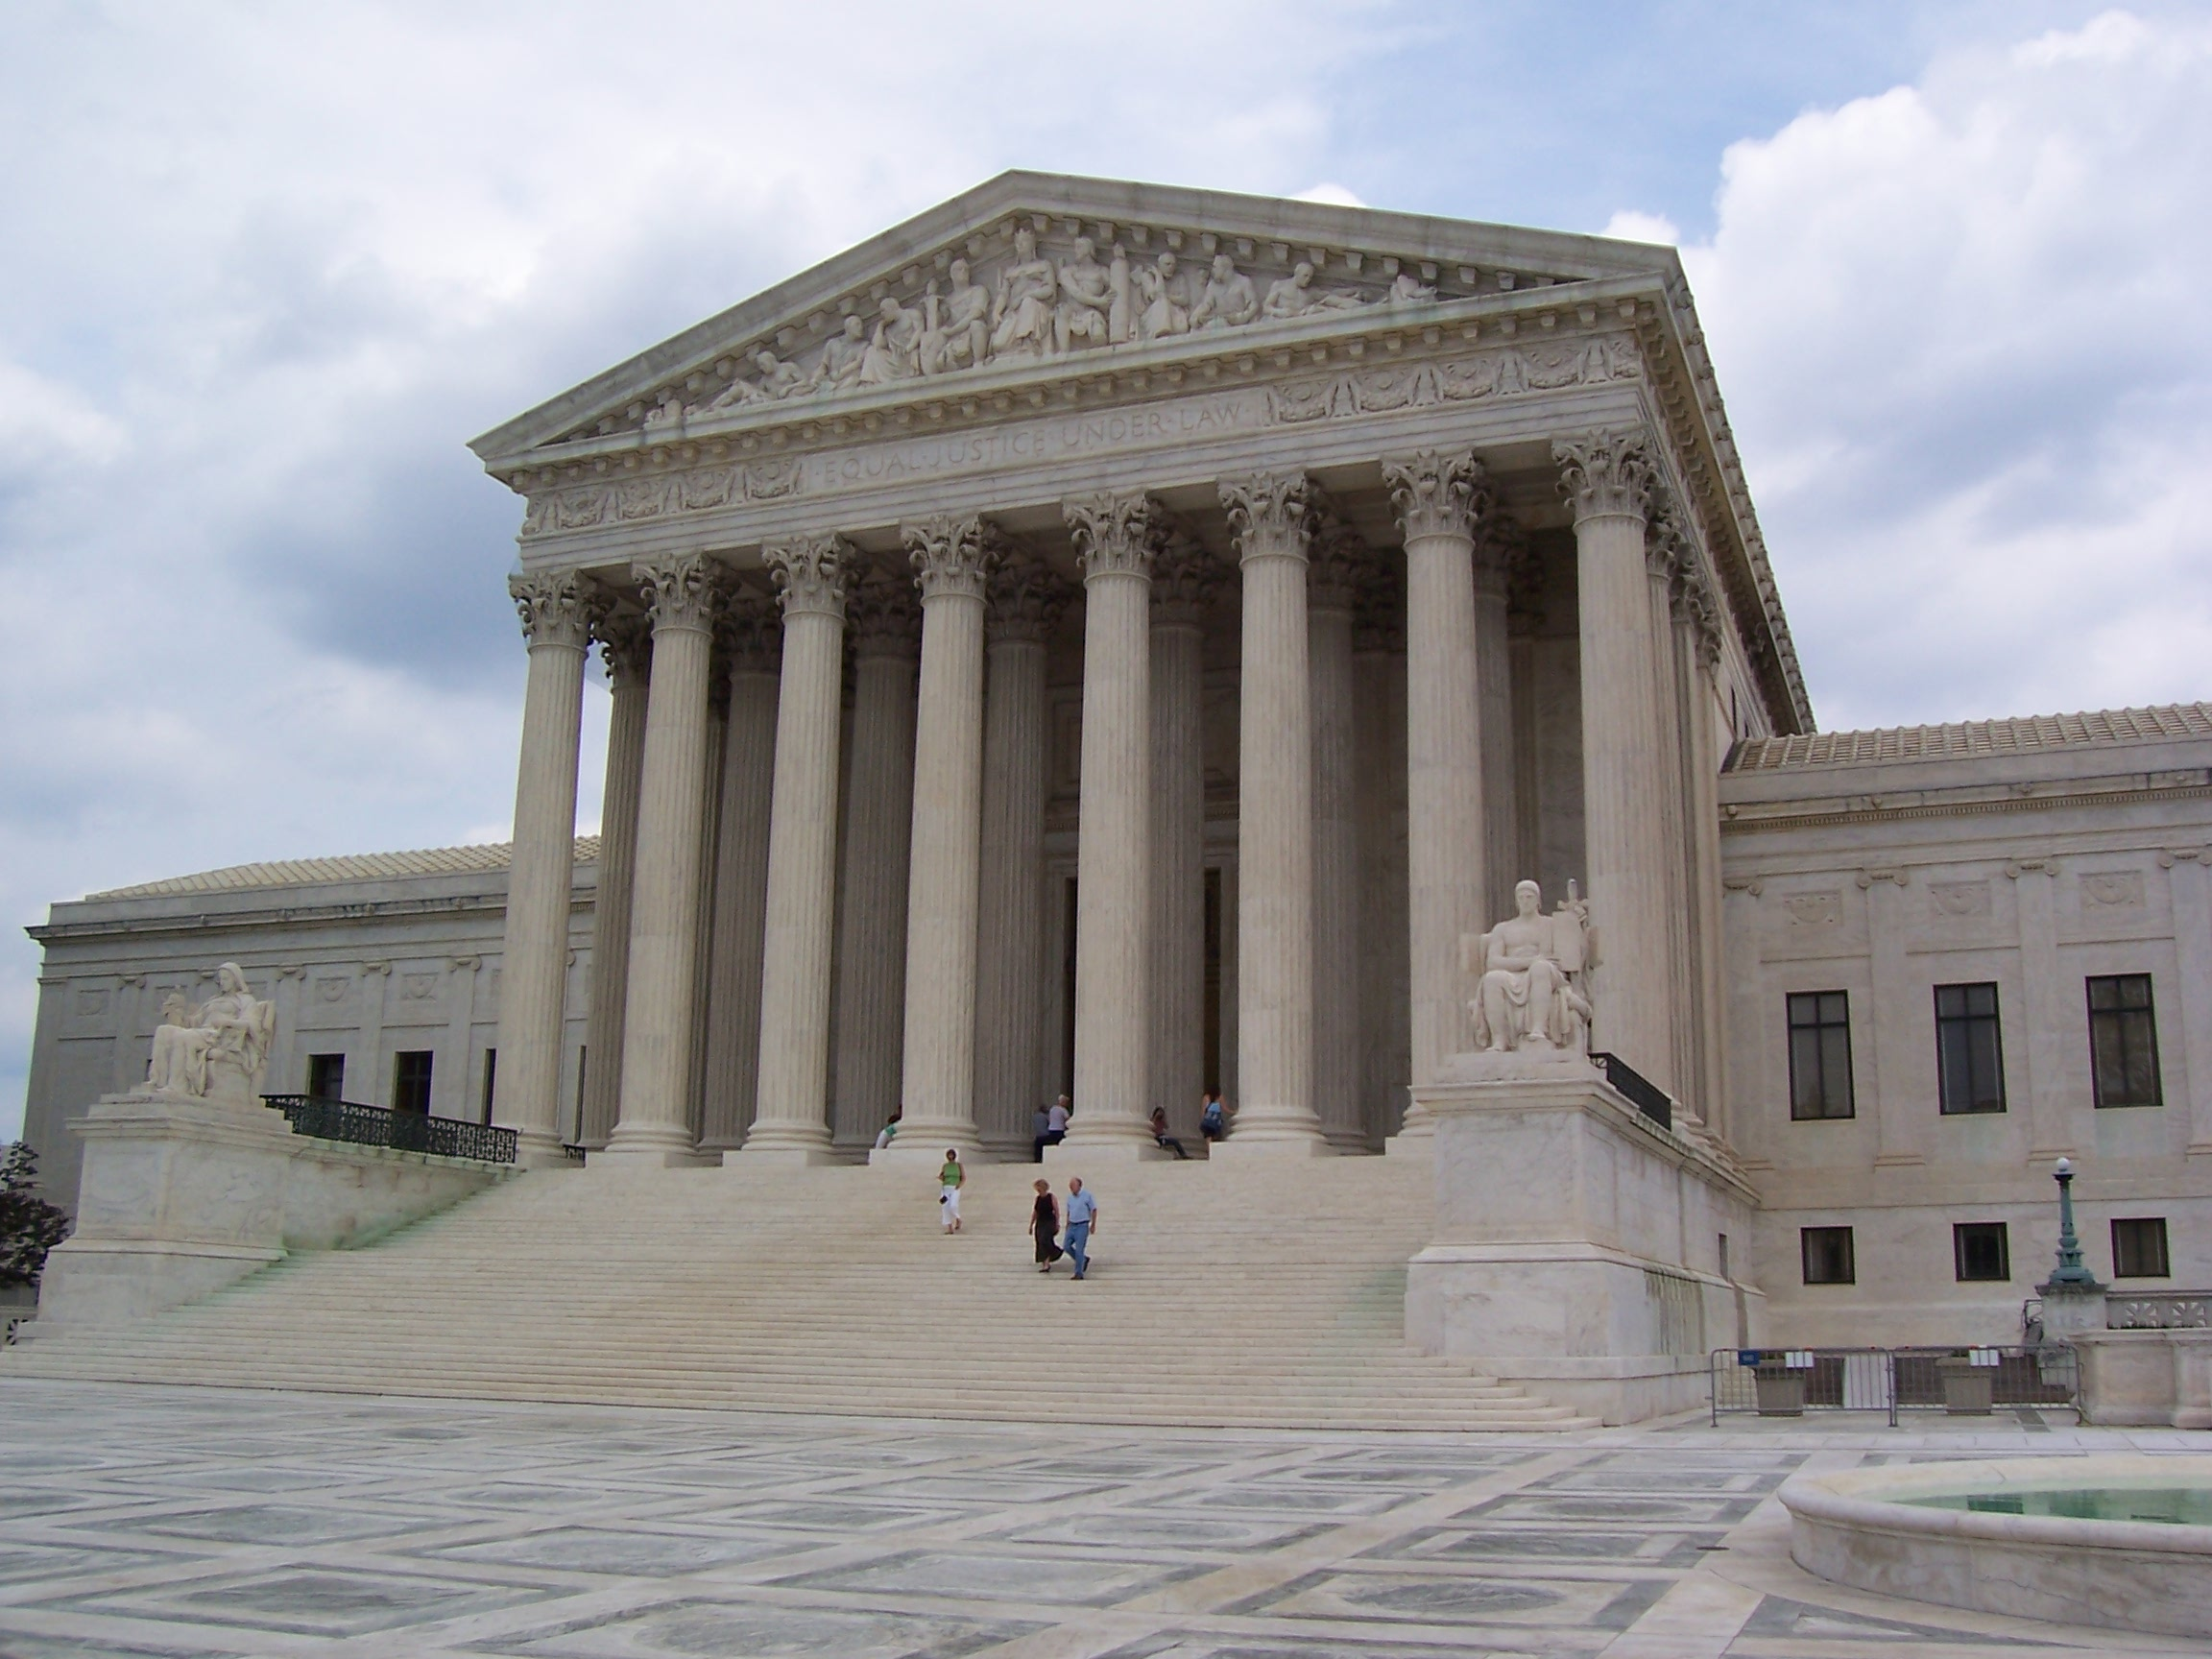 The U.S. Supreme Court Justices are returning from their midwinter break and will begin hearing cases again on February 19. (Wikimedia Commons)